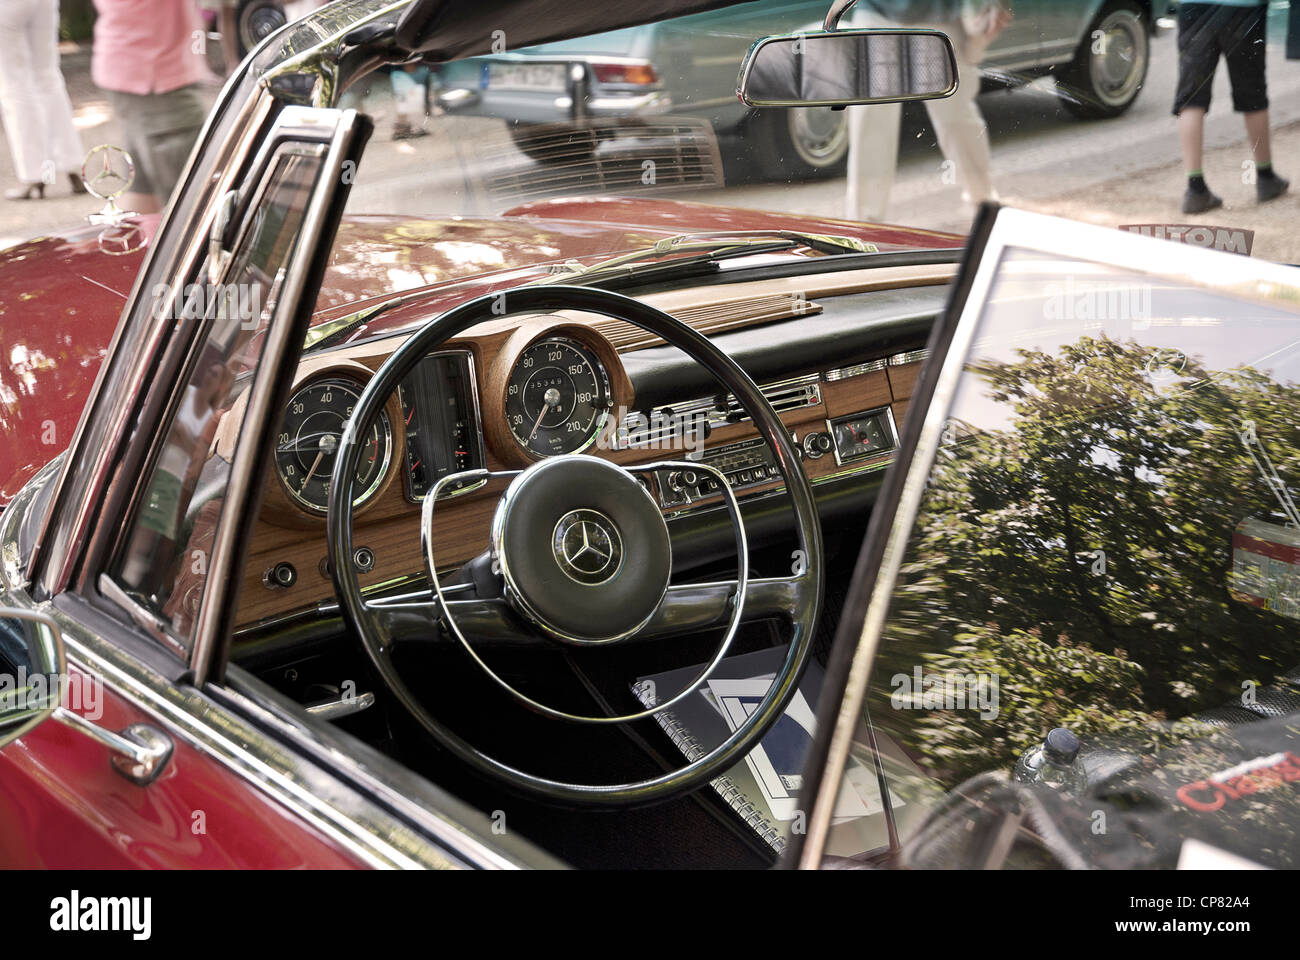 Interior And Dashboard Of An Old Mercedes 220 SE Cabriolet